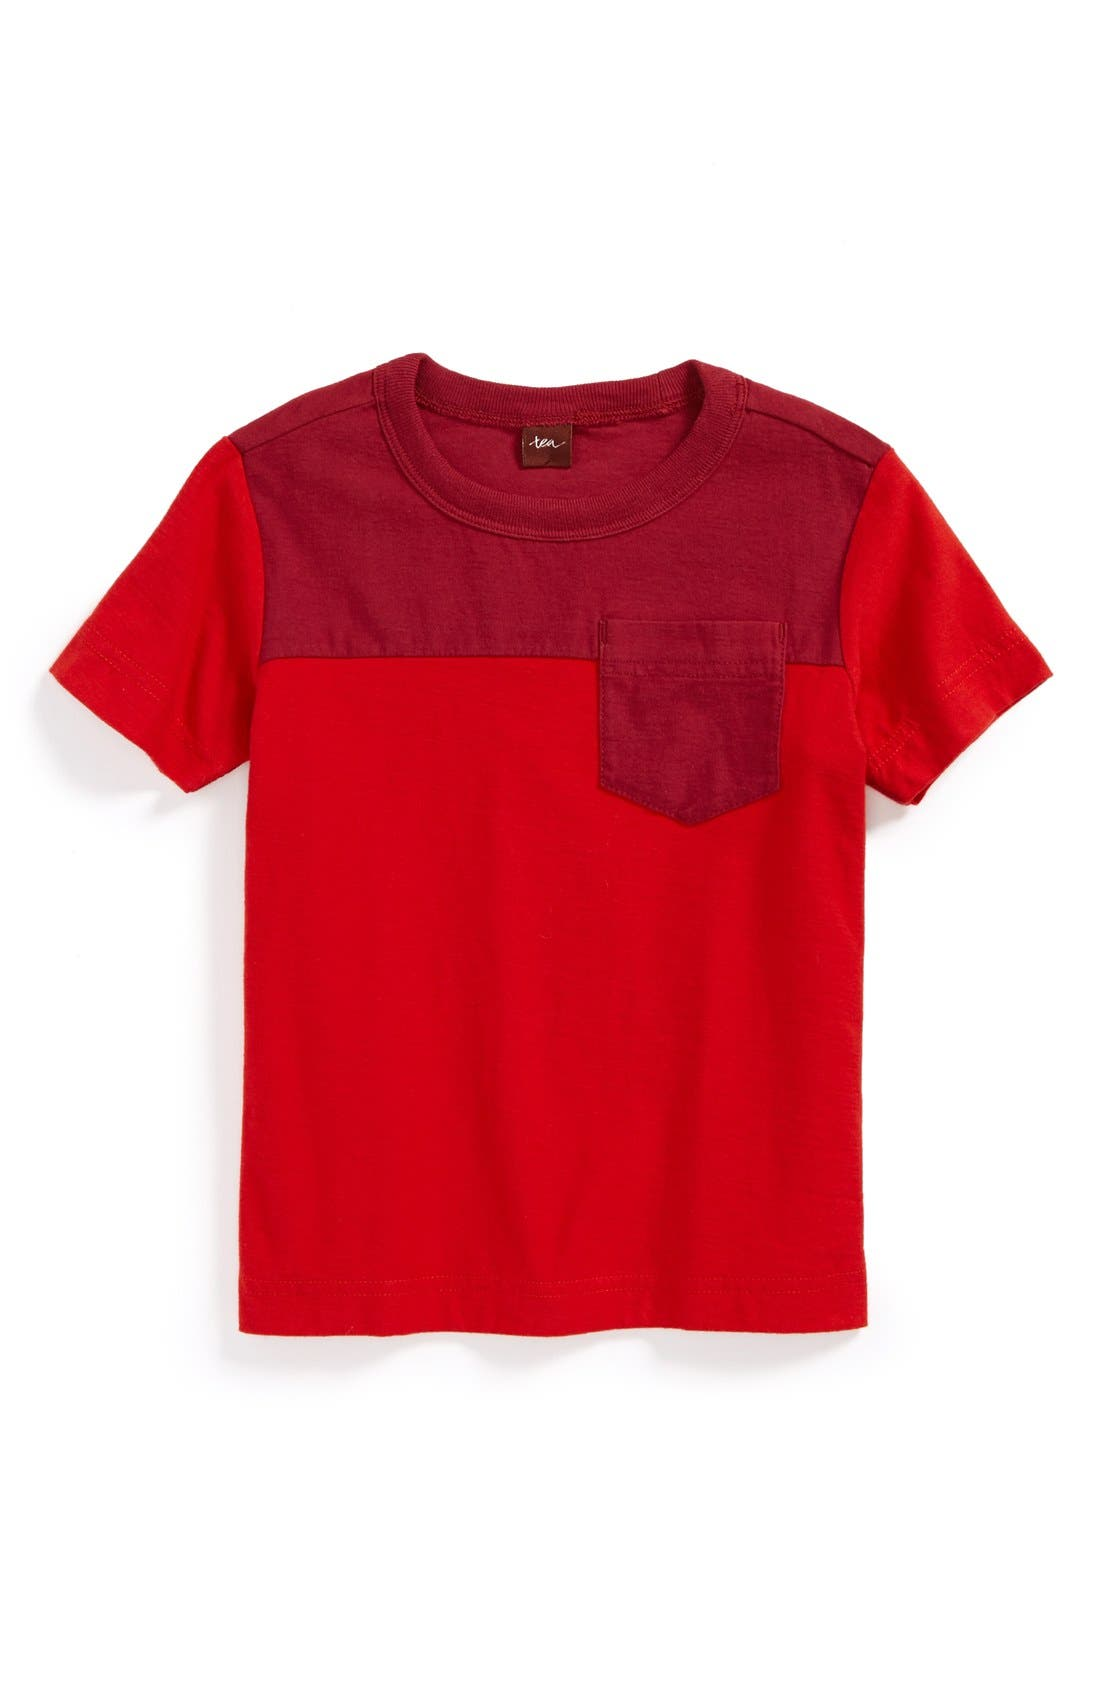 Main Image - Tea Collection Colorblock T-Shirt (Toddler Boys)